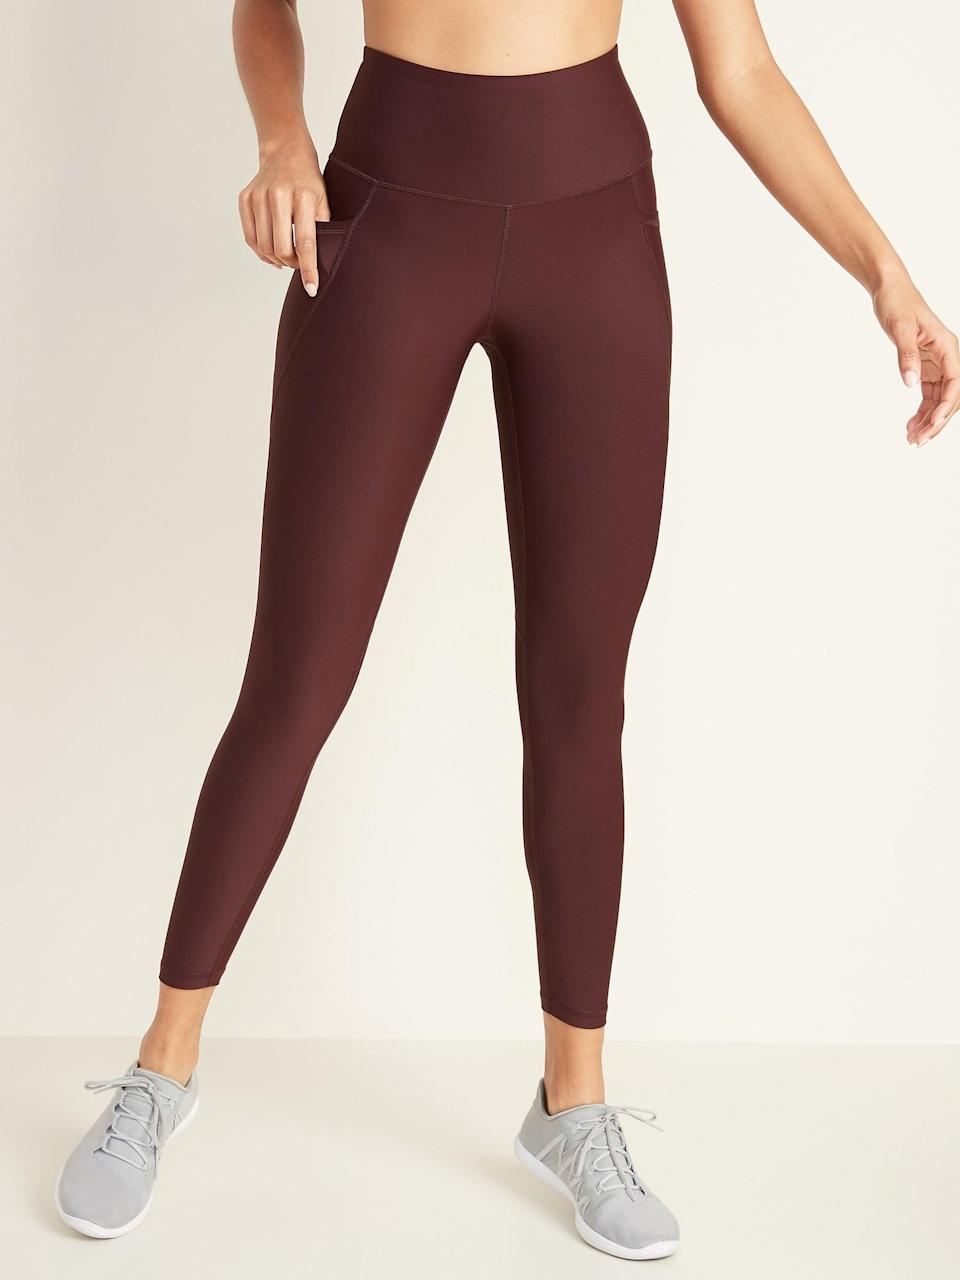 <p>The powersoft fabric is so cozy, you'll never want to take them off. We love the color of these <span>Old Navy High-Waisted Elevate Powersoft 7/8-Length Side-Pocket Leggings</span> ($25, originally $40).</p>